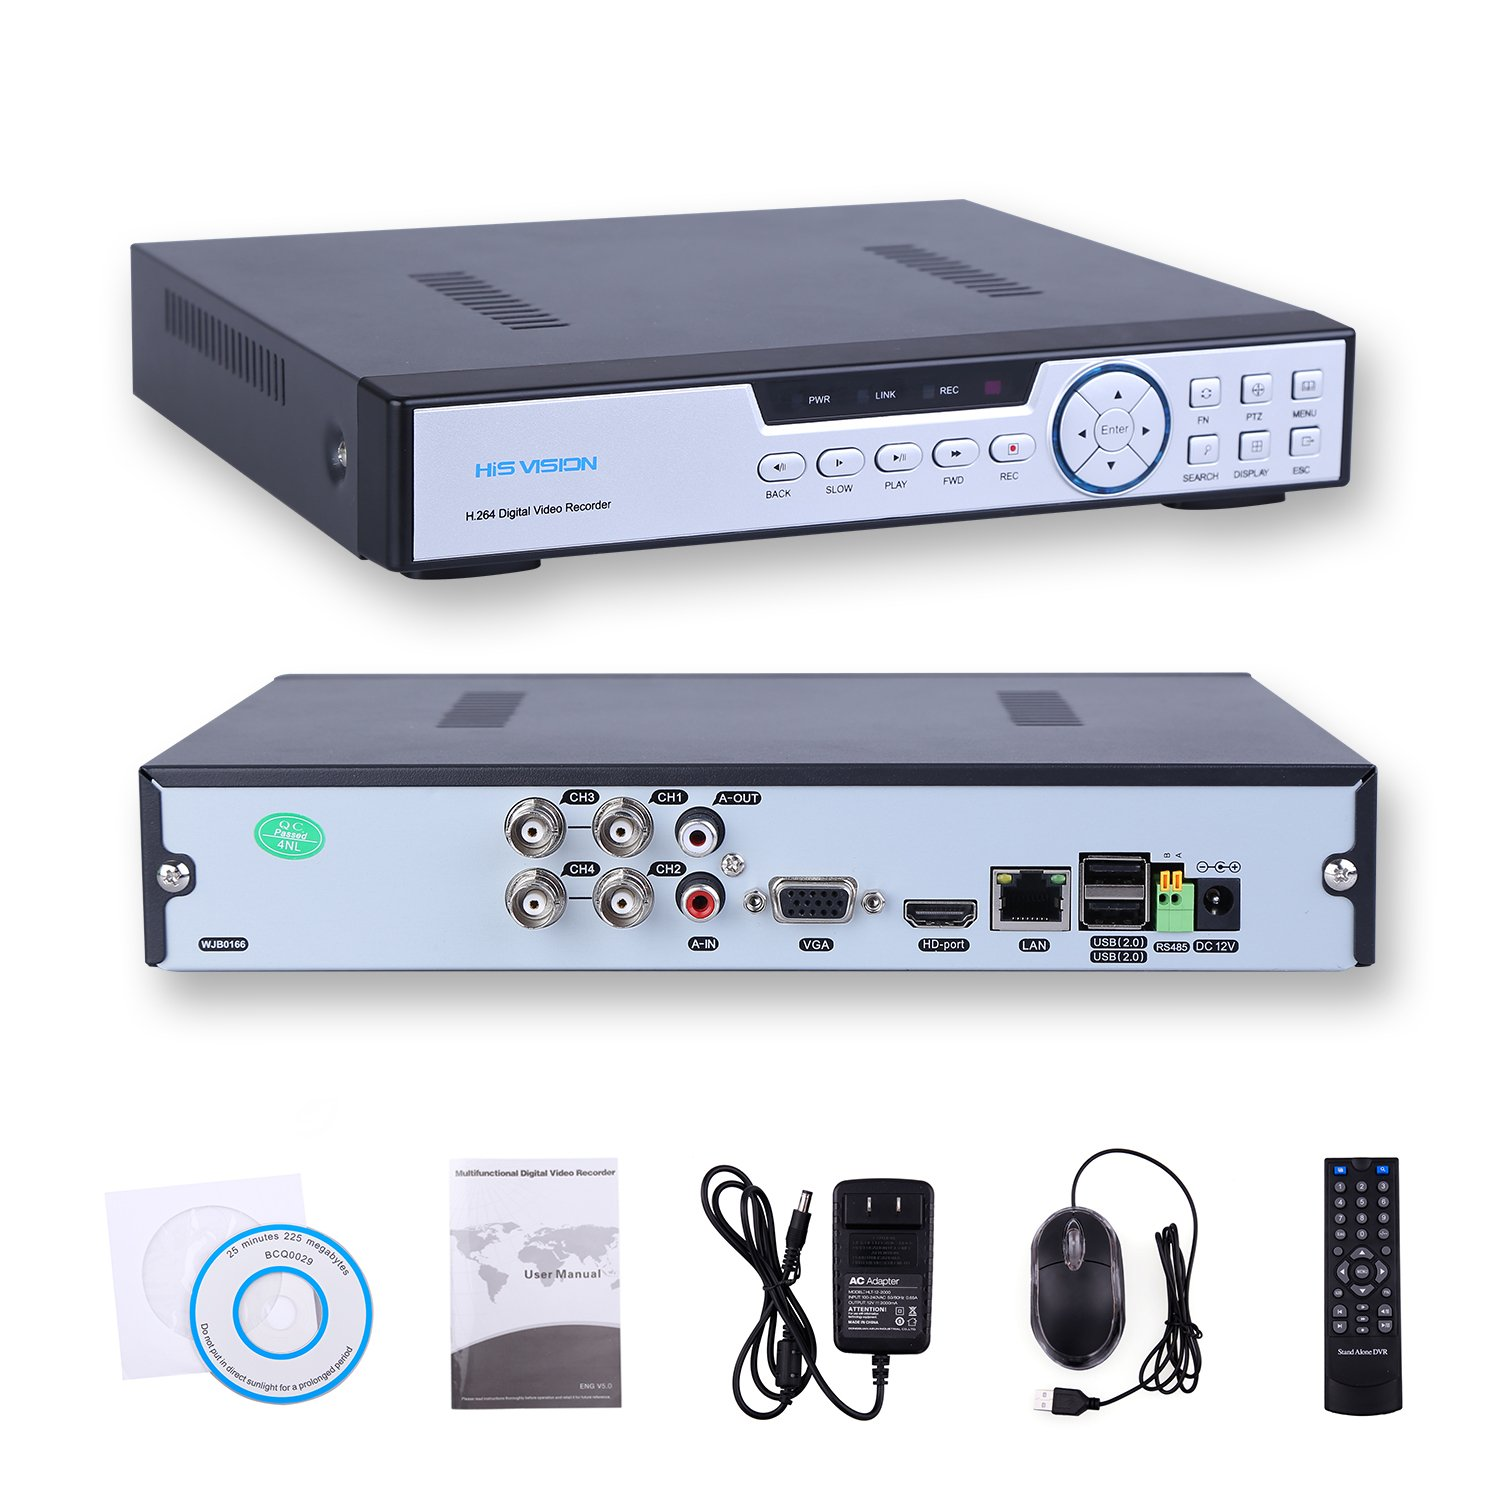 HISVISION 4CH 1080N Hybrid 5-in-1 AHD DVR (1080P NVR+1080N AHD+960H Analog+TVI+CVI) CCTV Quick QR Code Scan/ Easy Remote View /Motion Detection Email Alerts Home Security Surveillance System (No HDD)